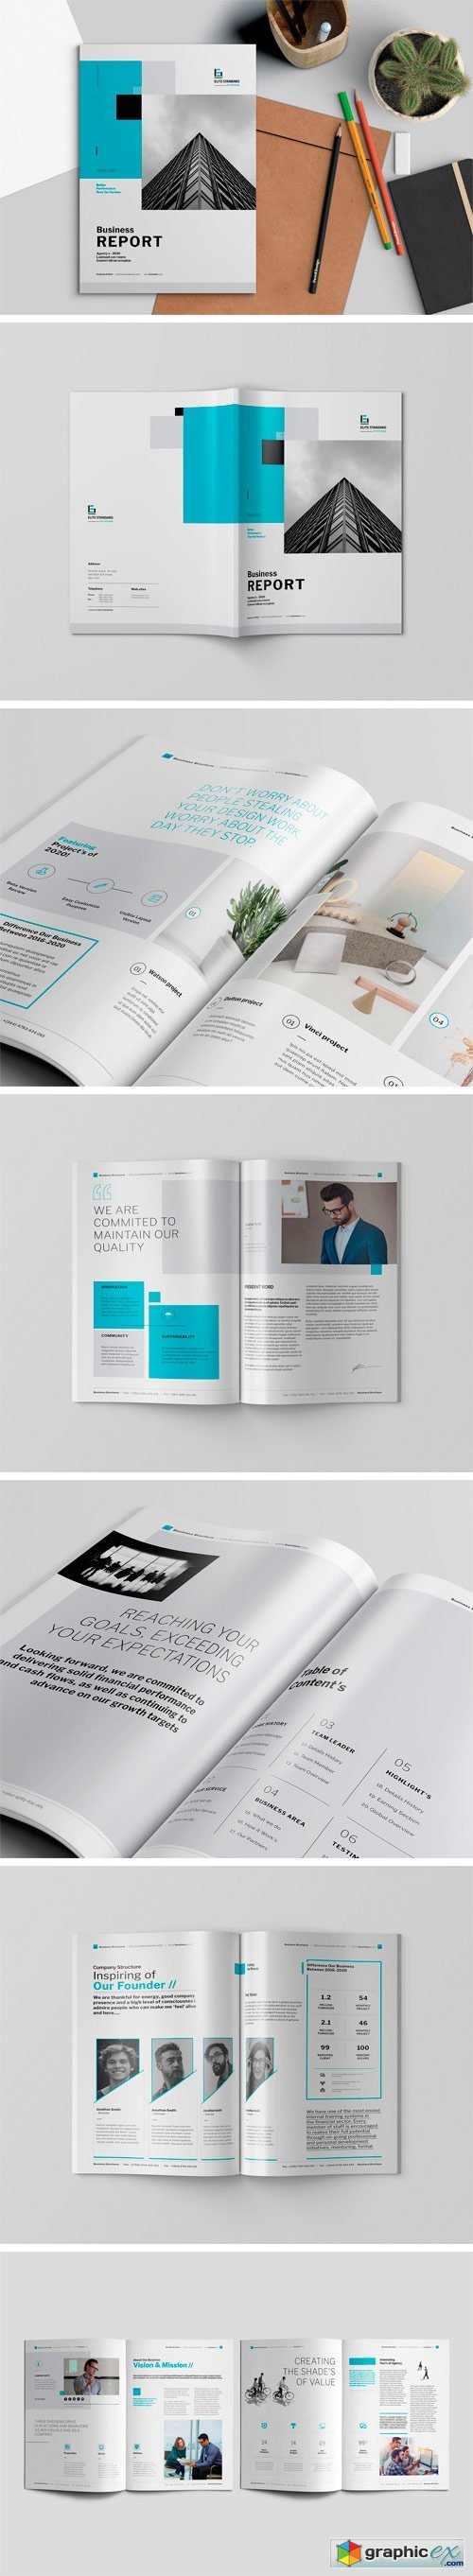 Business Report Template 1480538